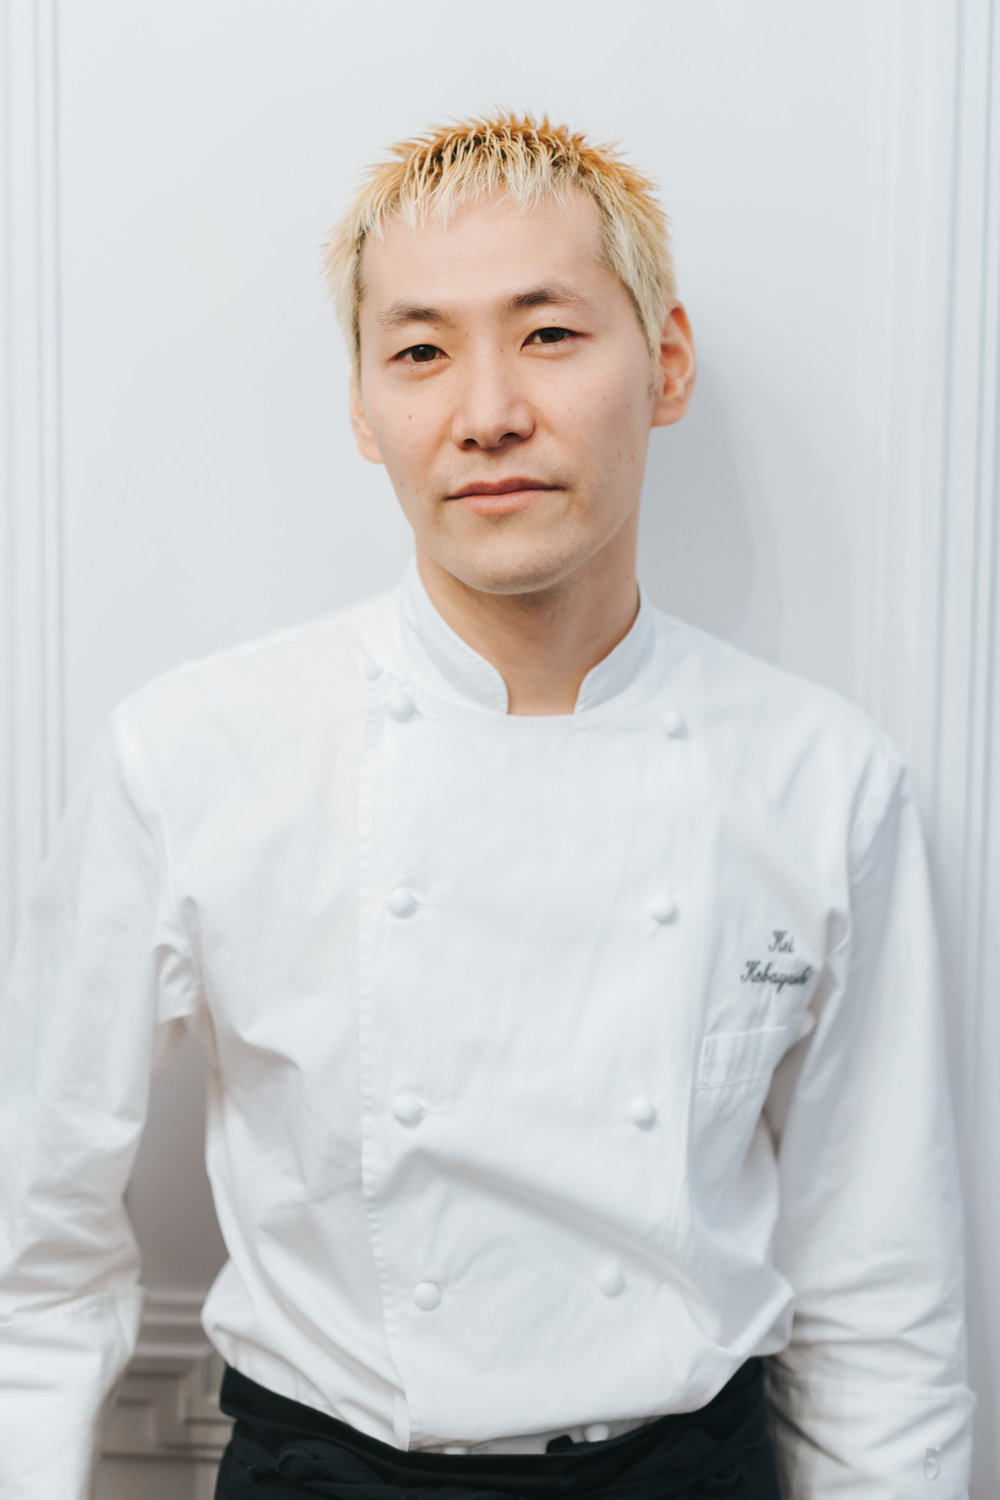 Chef Kei Kobayashi at restaurant Kei in Paris portrait by Paris Photographer Federico Guendel